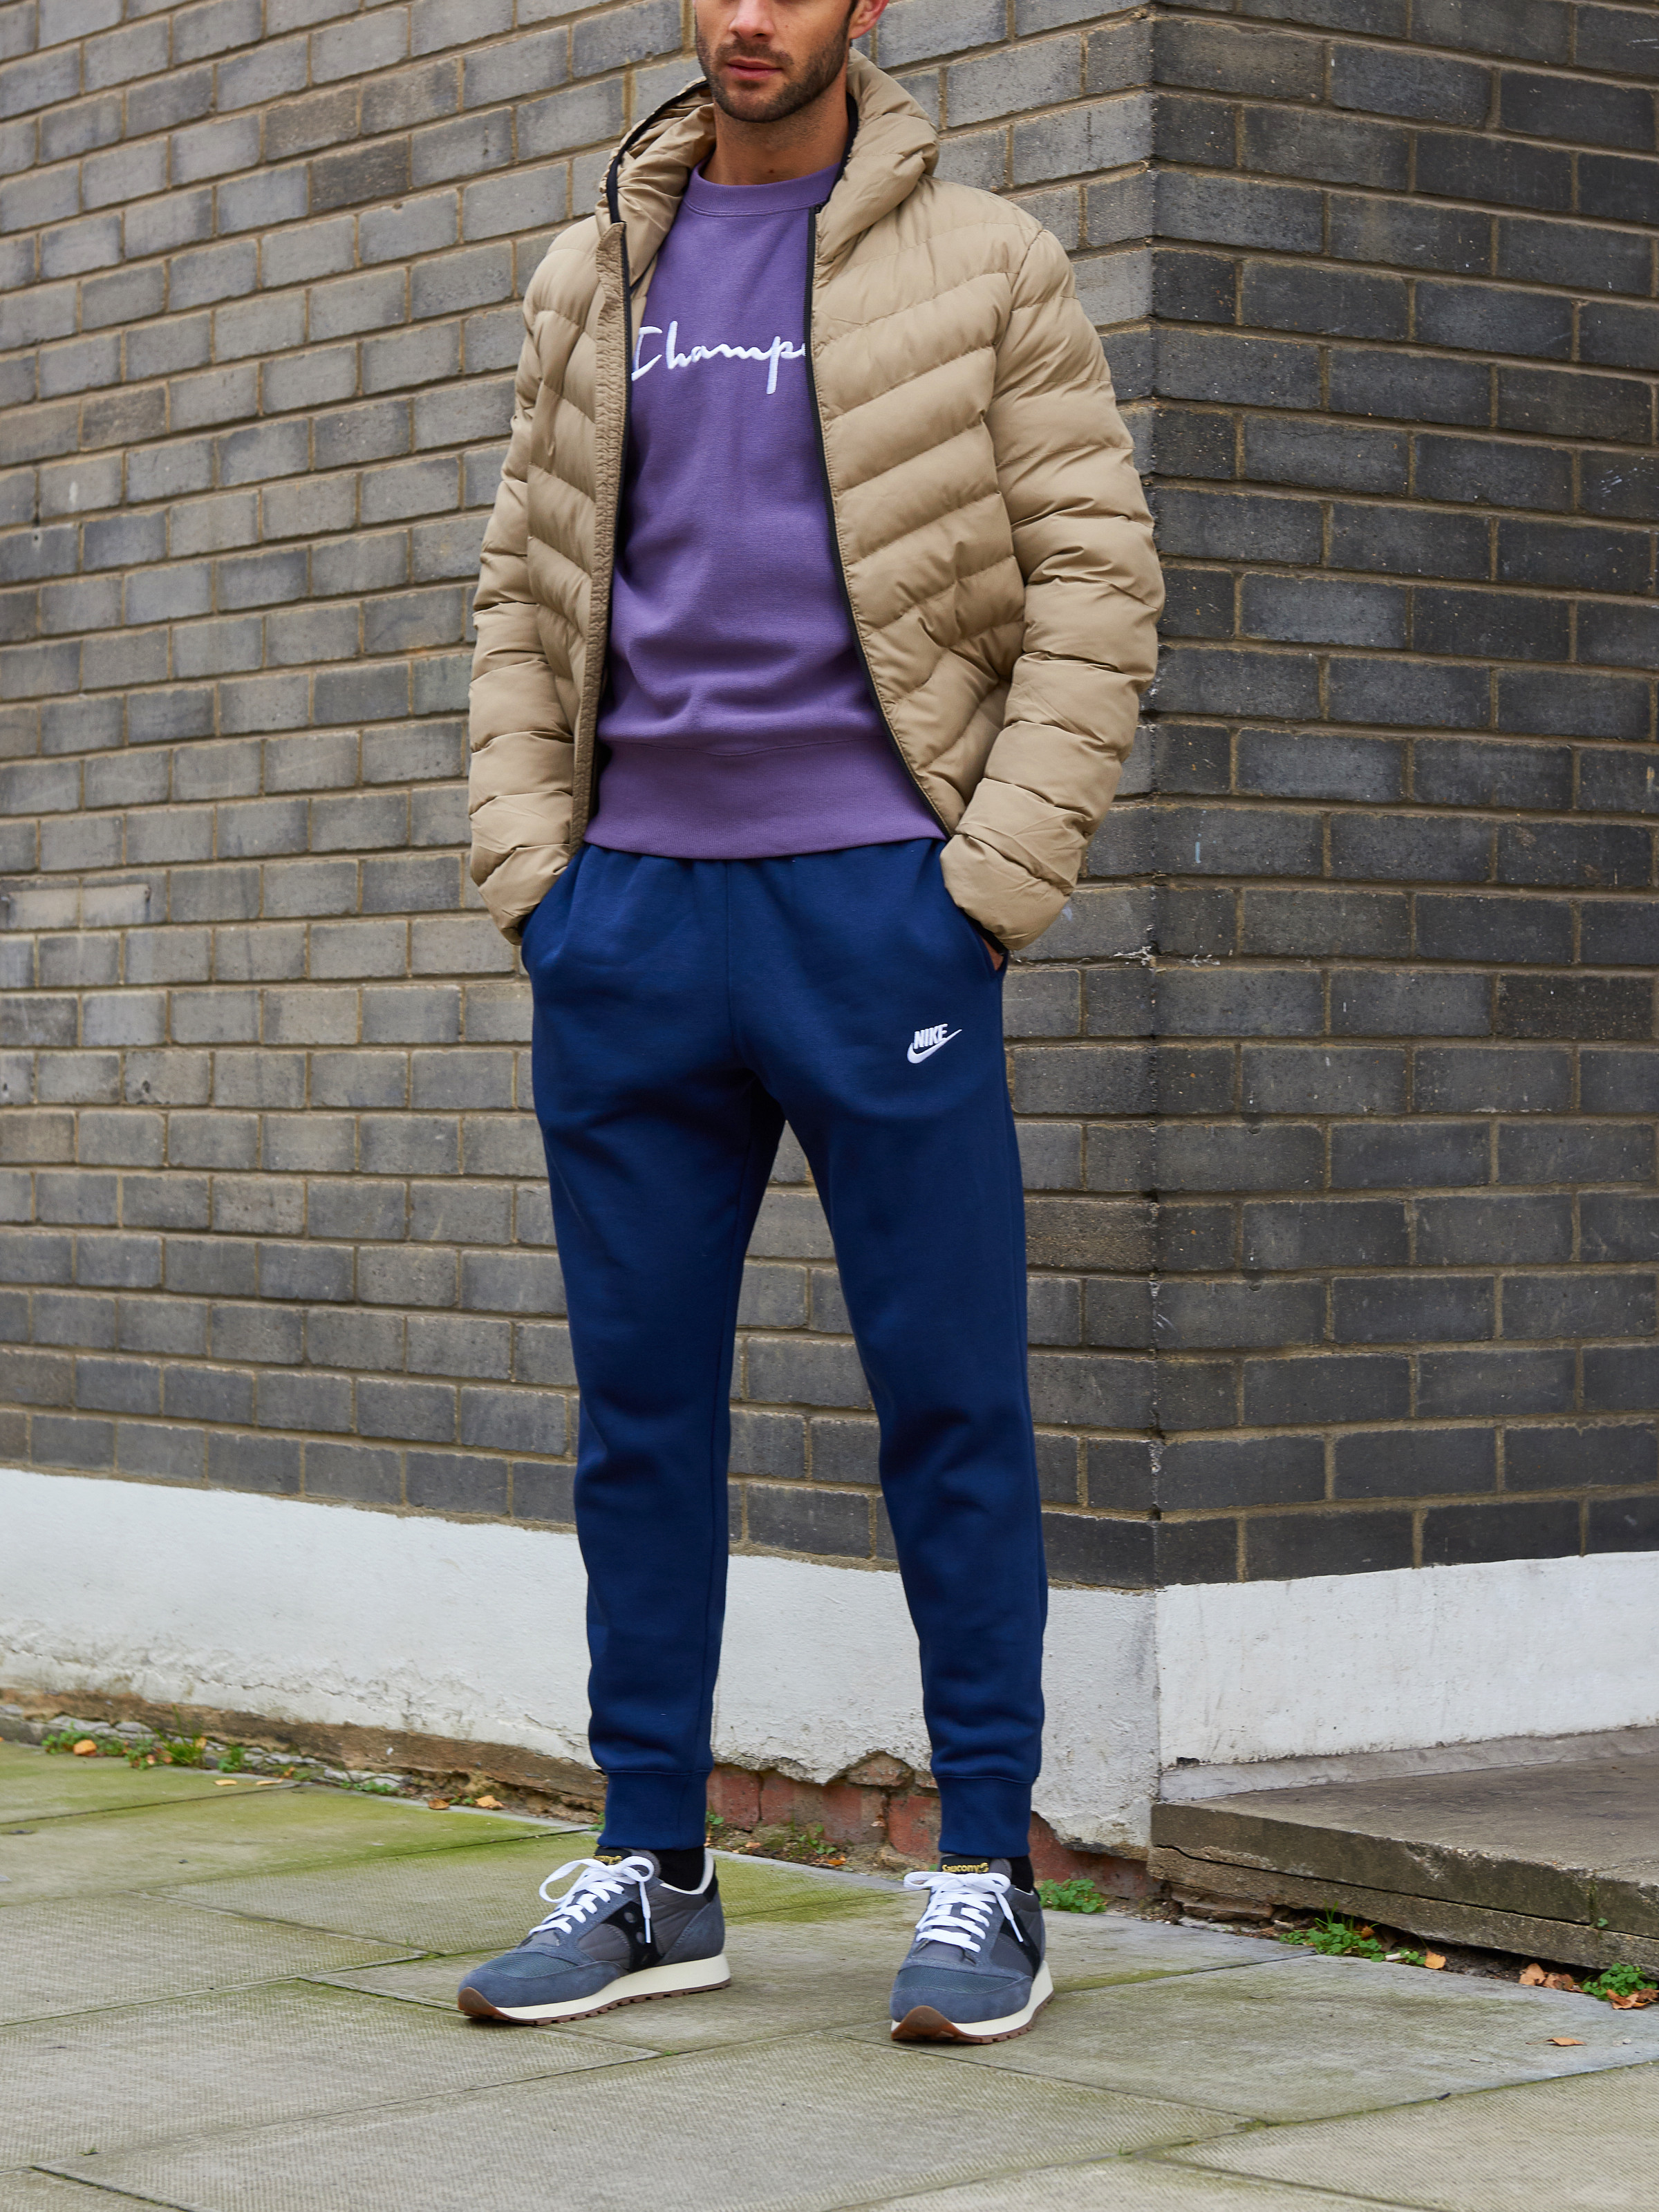 Men's outfit idea for 2021 with brown down coat, purple logo / printed sweatshirt, sweatpants, neutral sneakers. Suitable for fall and winter.